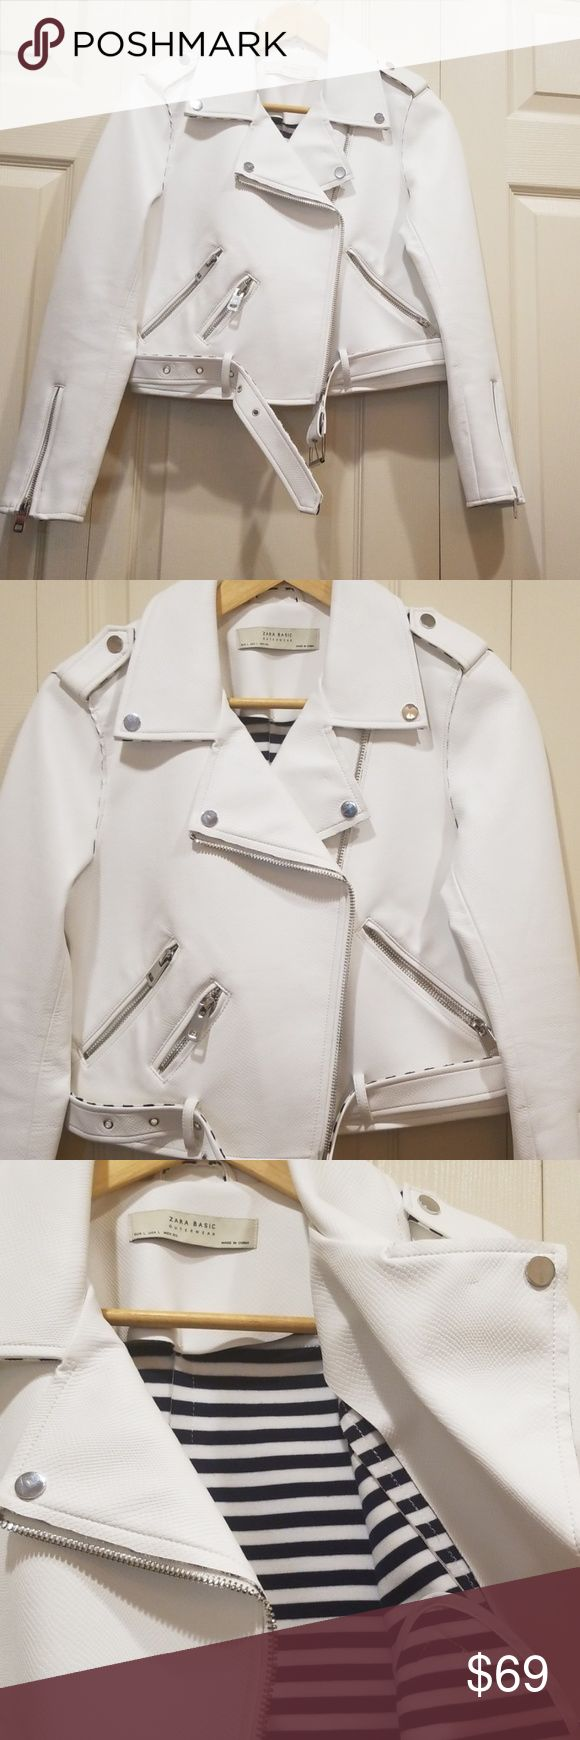 ZARA BASIC White Faux Leather Moto Jacket Faux leather